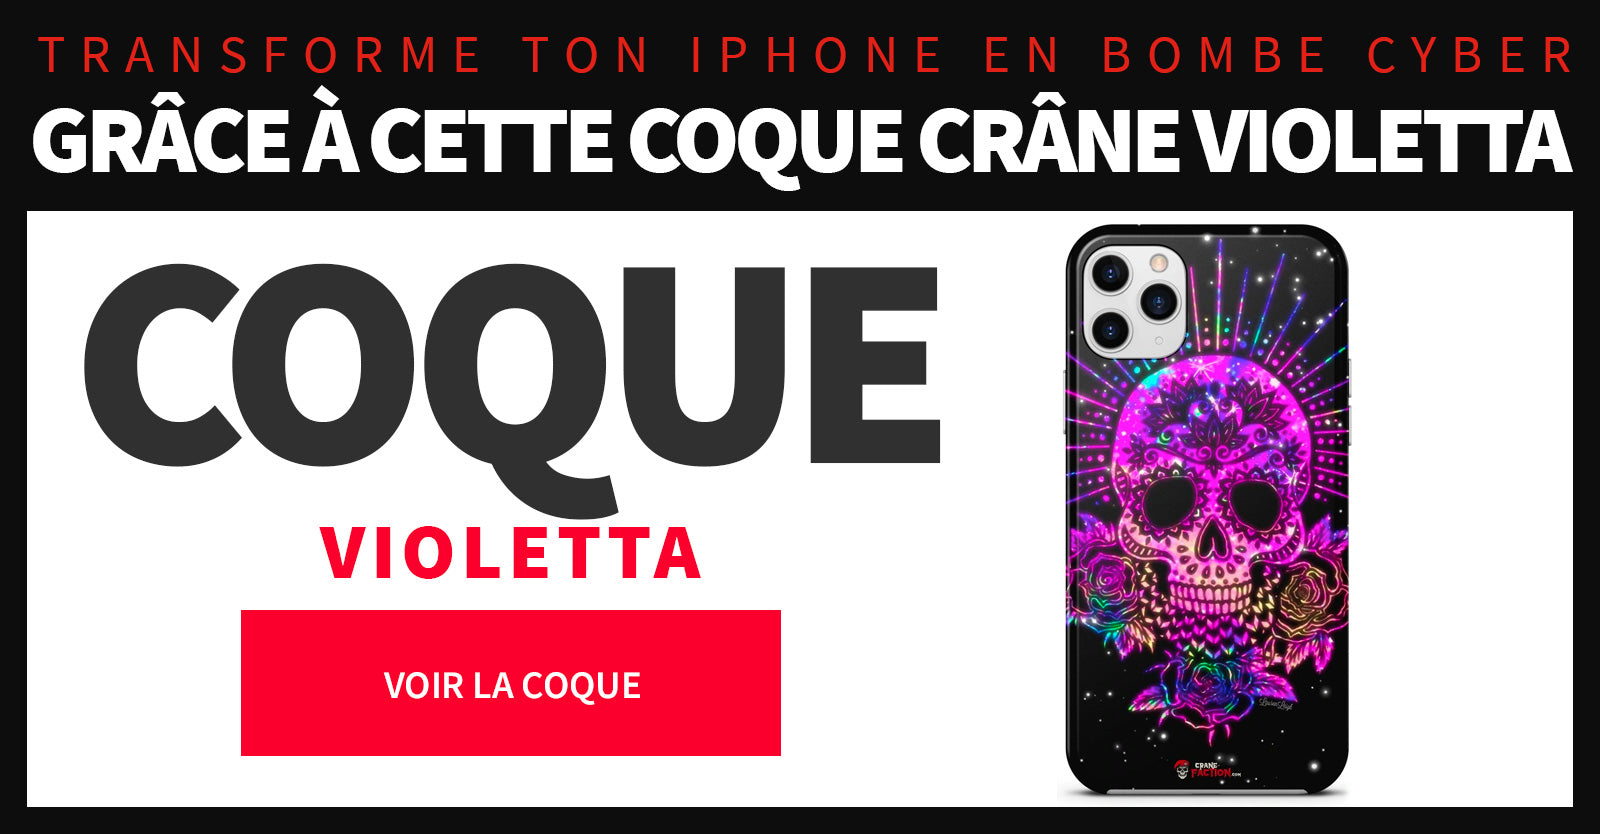 Coque crâne violet Iphone